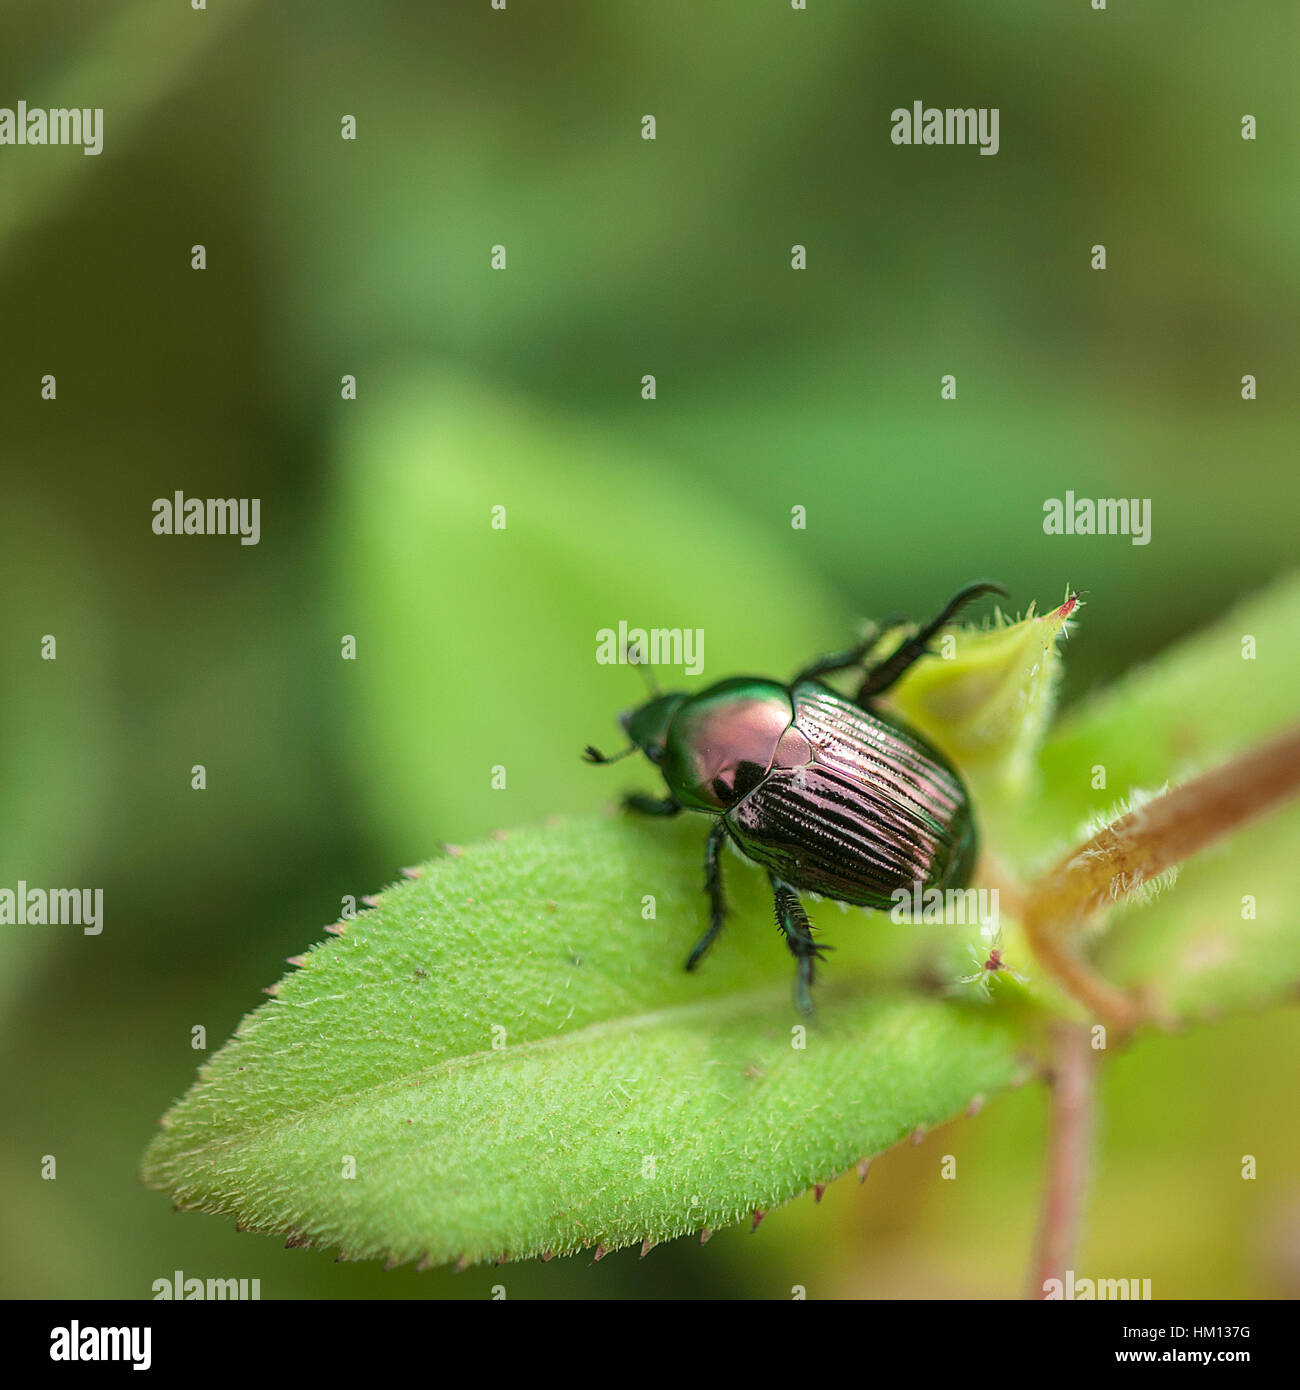 insects world ! Stock Photo